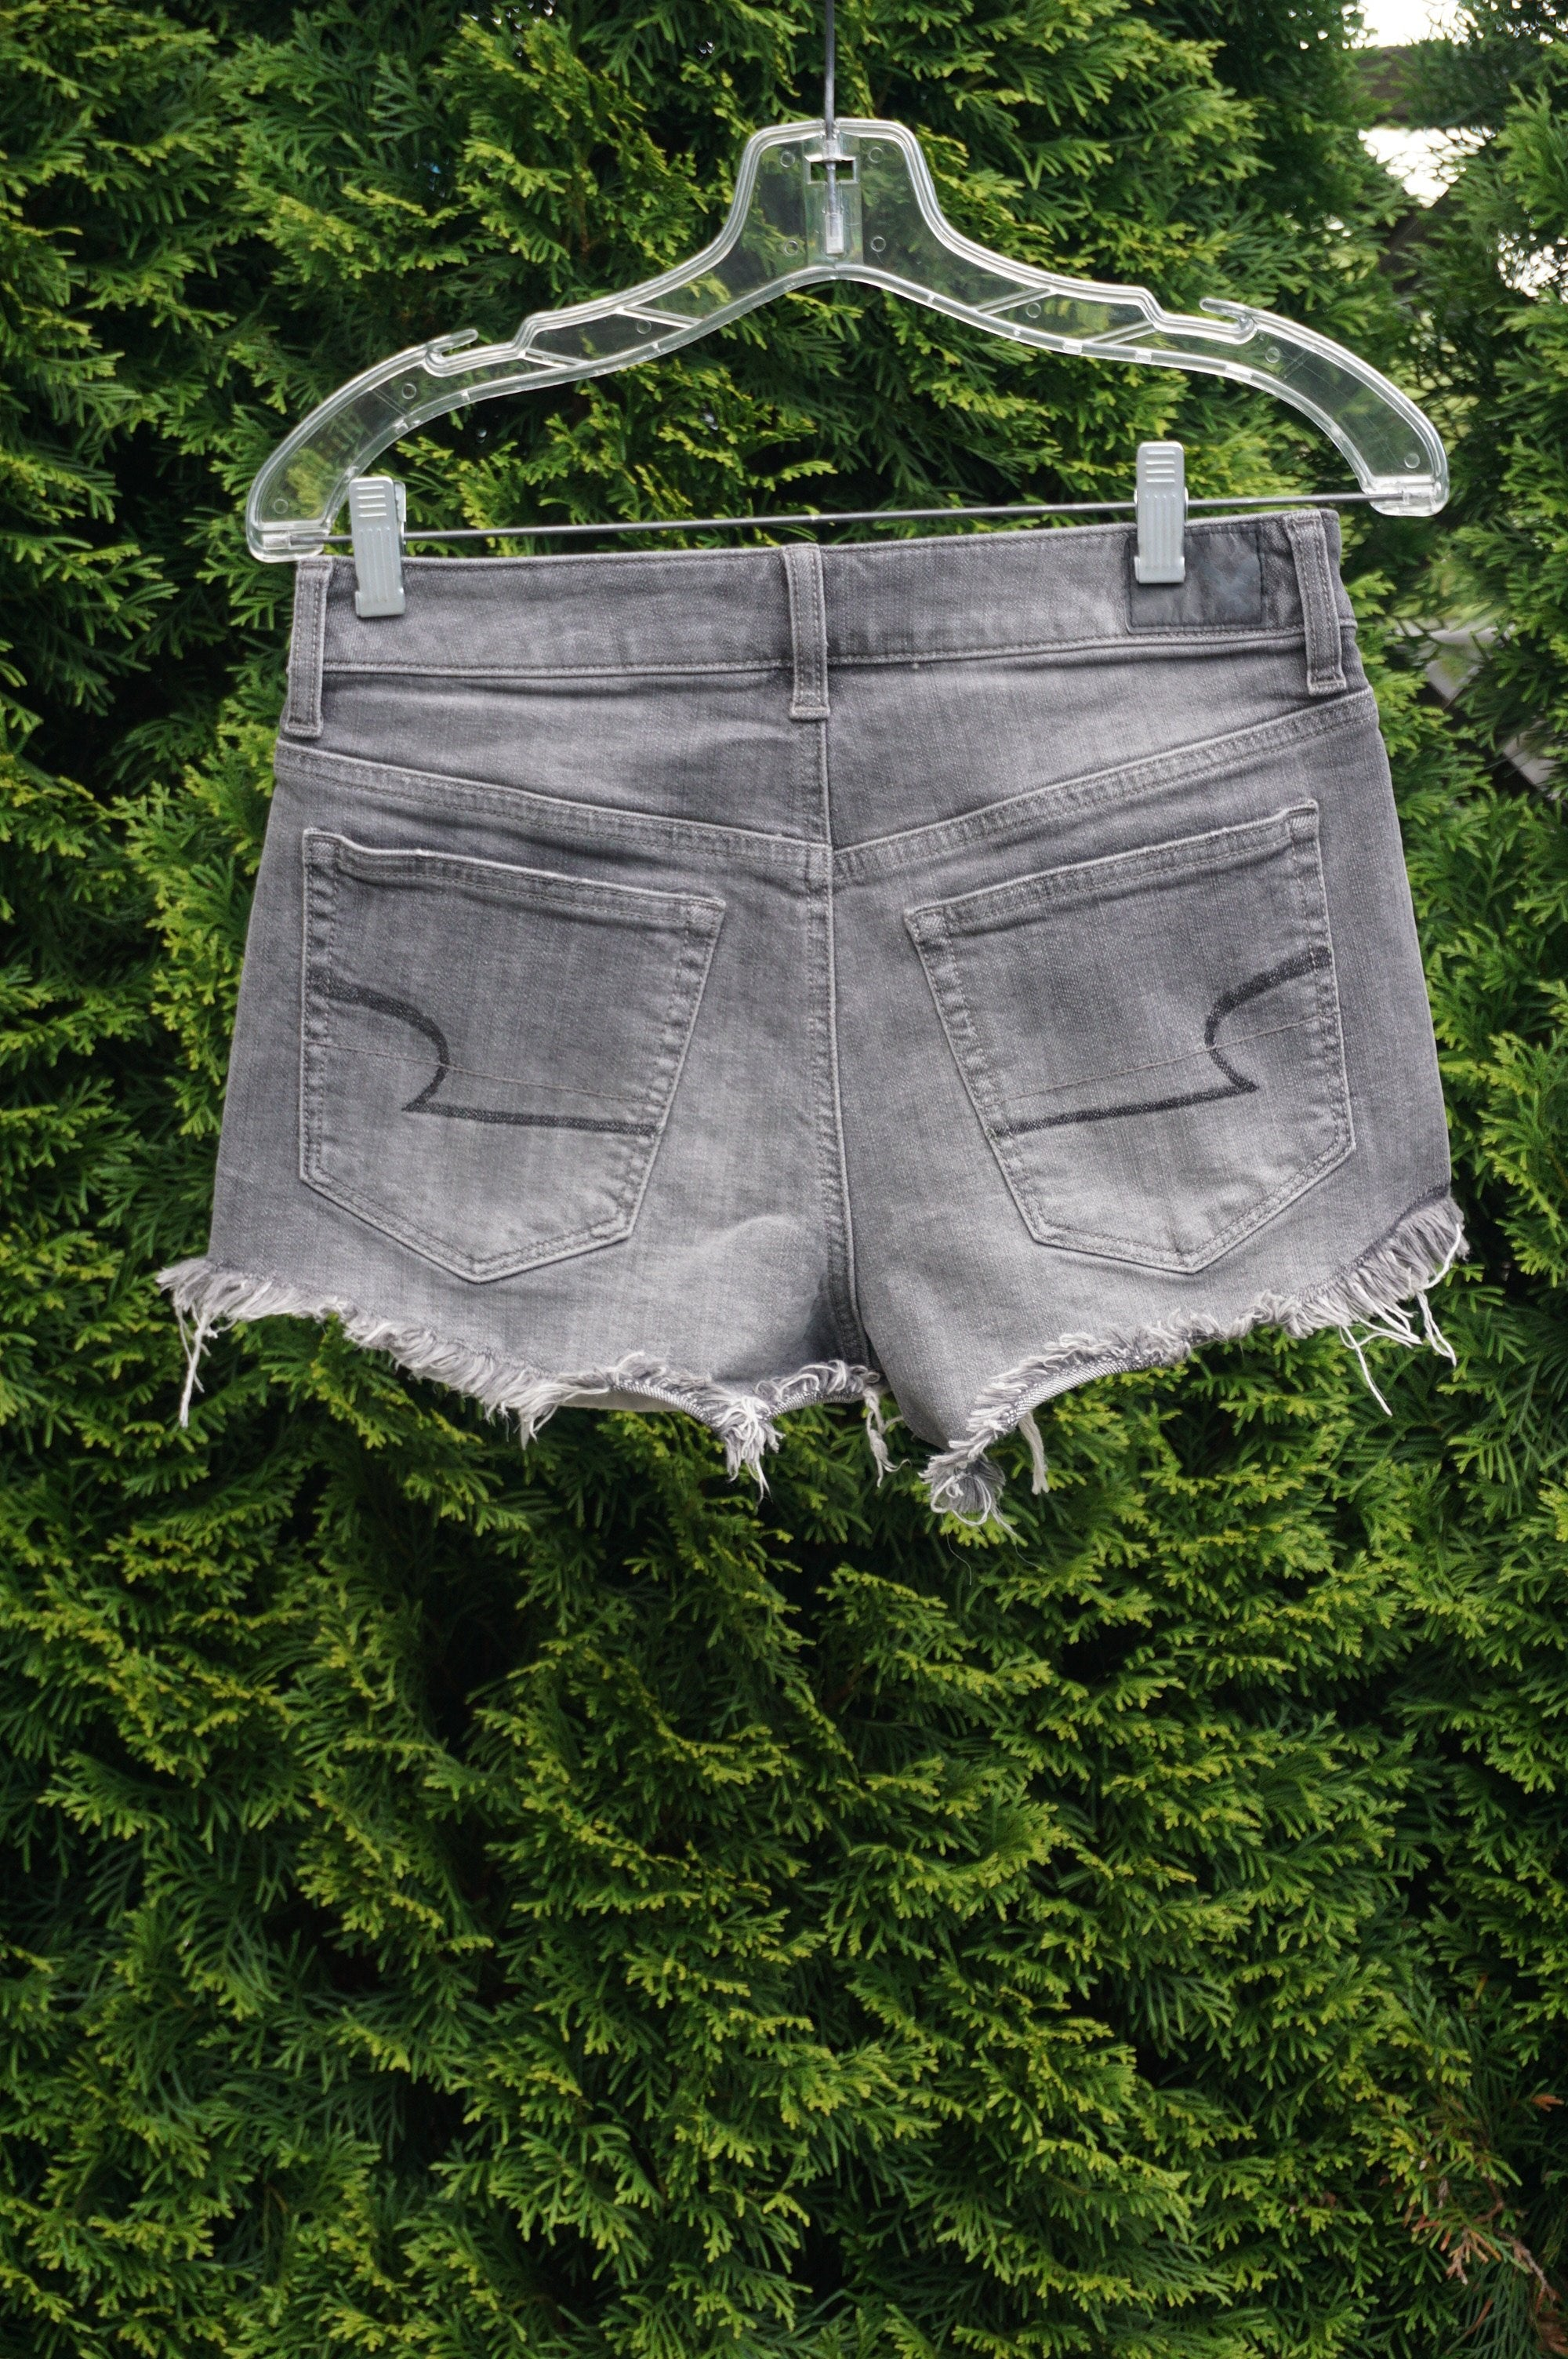 American Eagle Grey Jean Shorts, waist 29, leg opening 24, length 10.5 (inches), Grey, 100% Cotton, women's Skirts & Shorts, women's Grey Skirts & Shorts, American Eagle women's Skirts & Shorts, jean short, summer shorts,